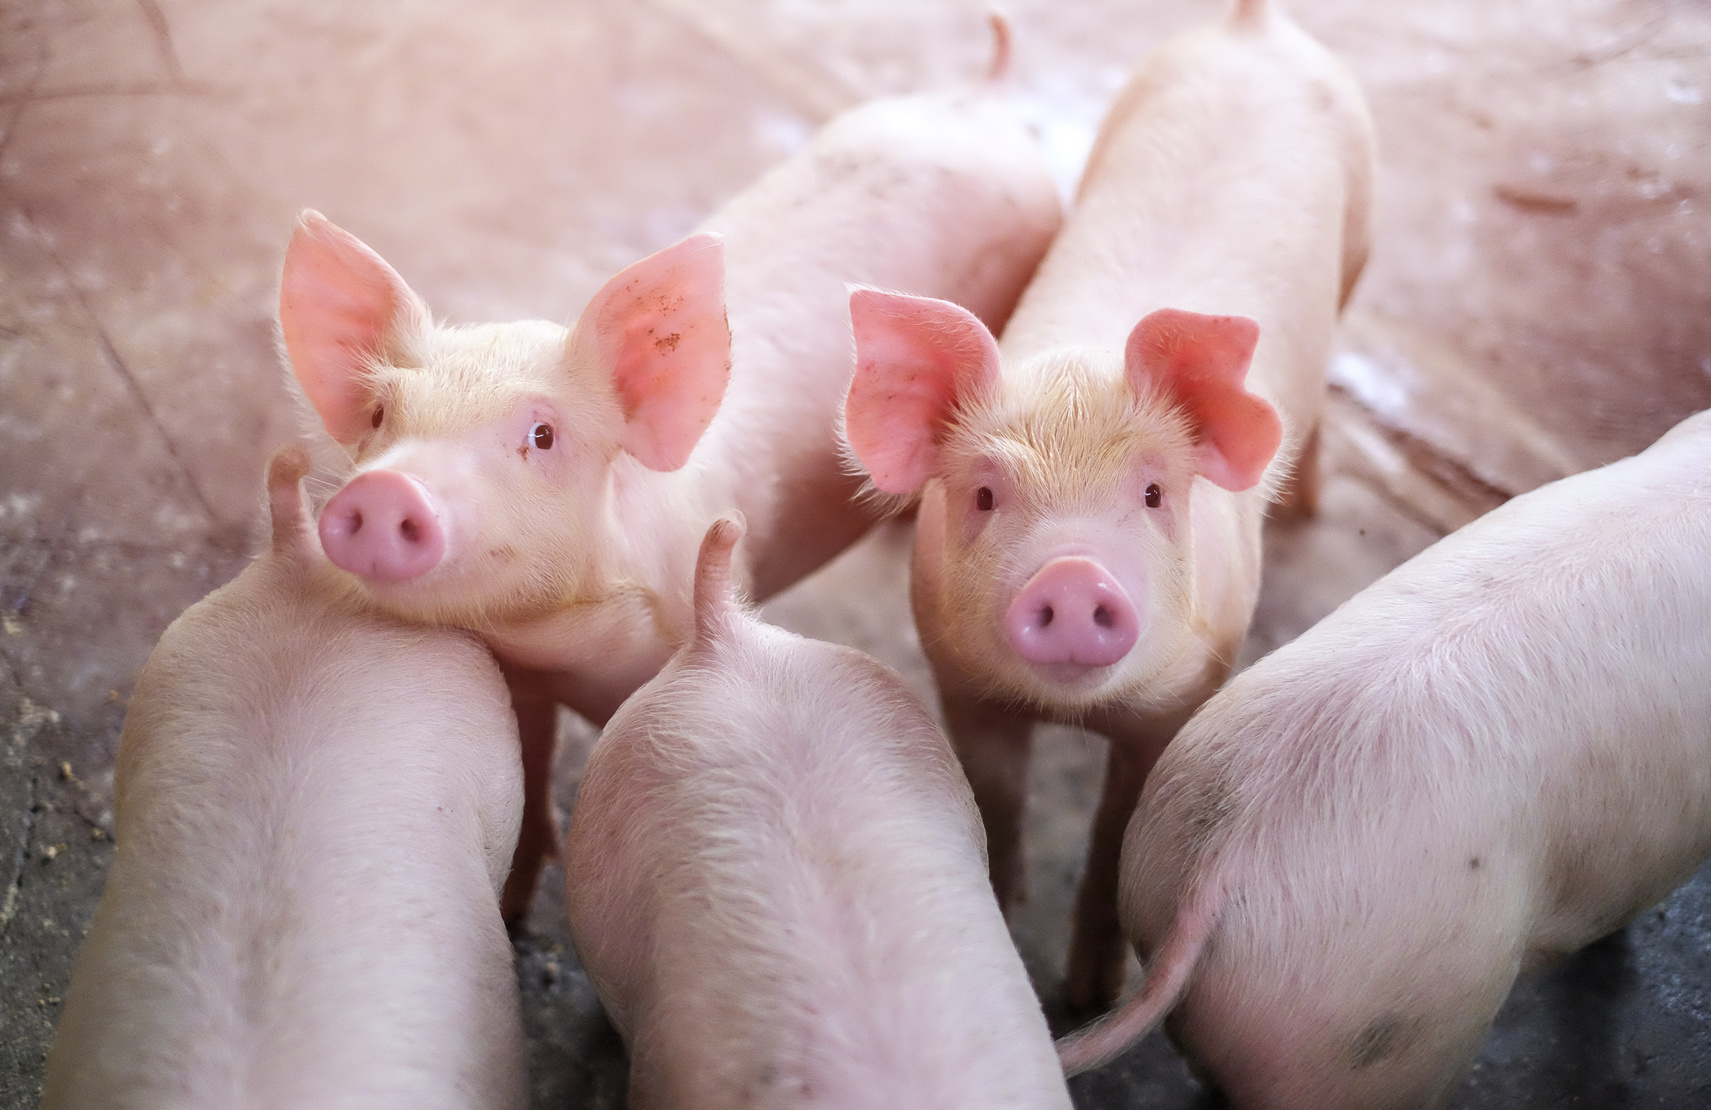 Changing trends in pork consumption in European Union countries